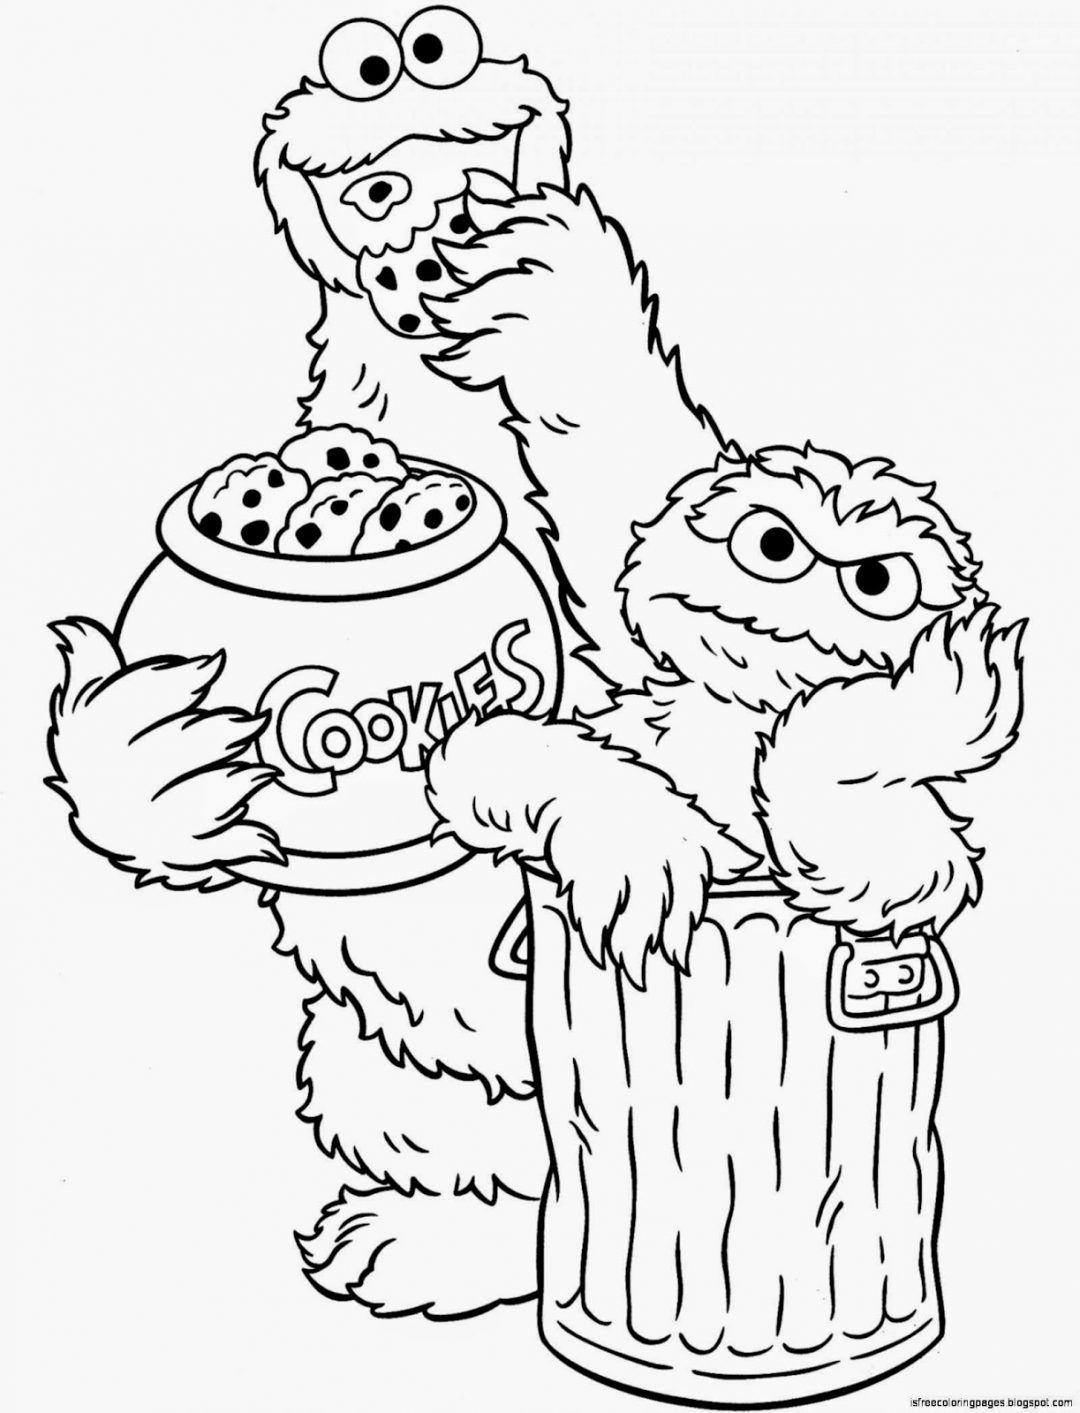 Coloring Rocks Sesame Street Coloring Pages Monster Coloring Pages Cartoon Coloring Pages